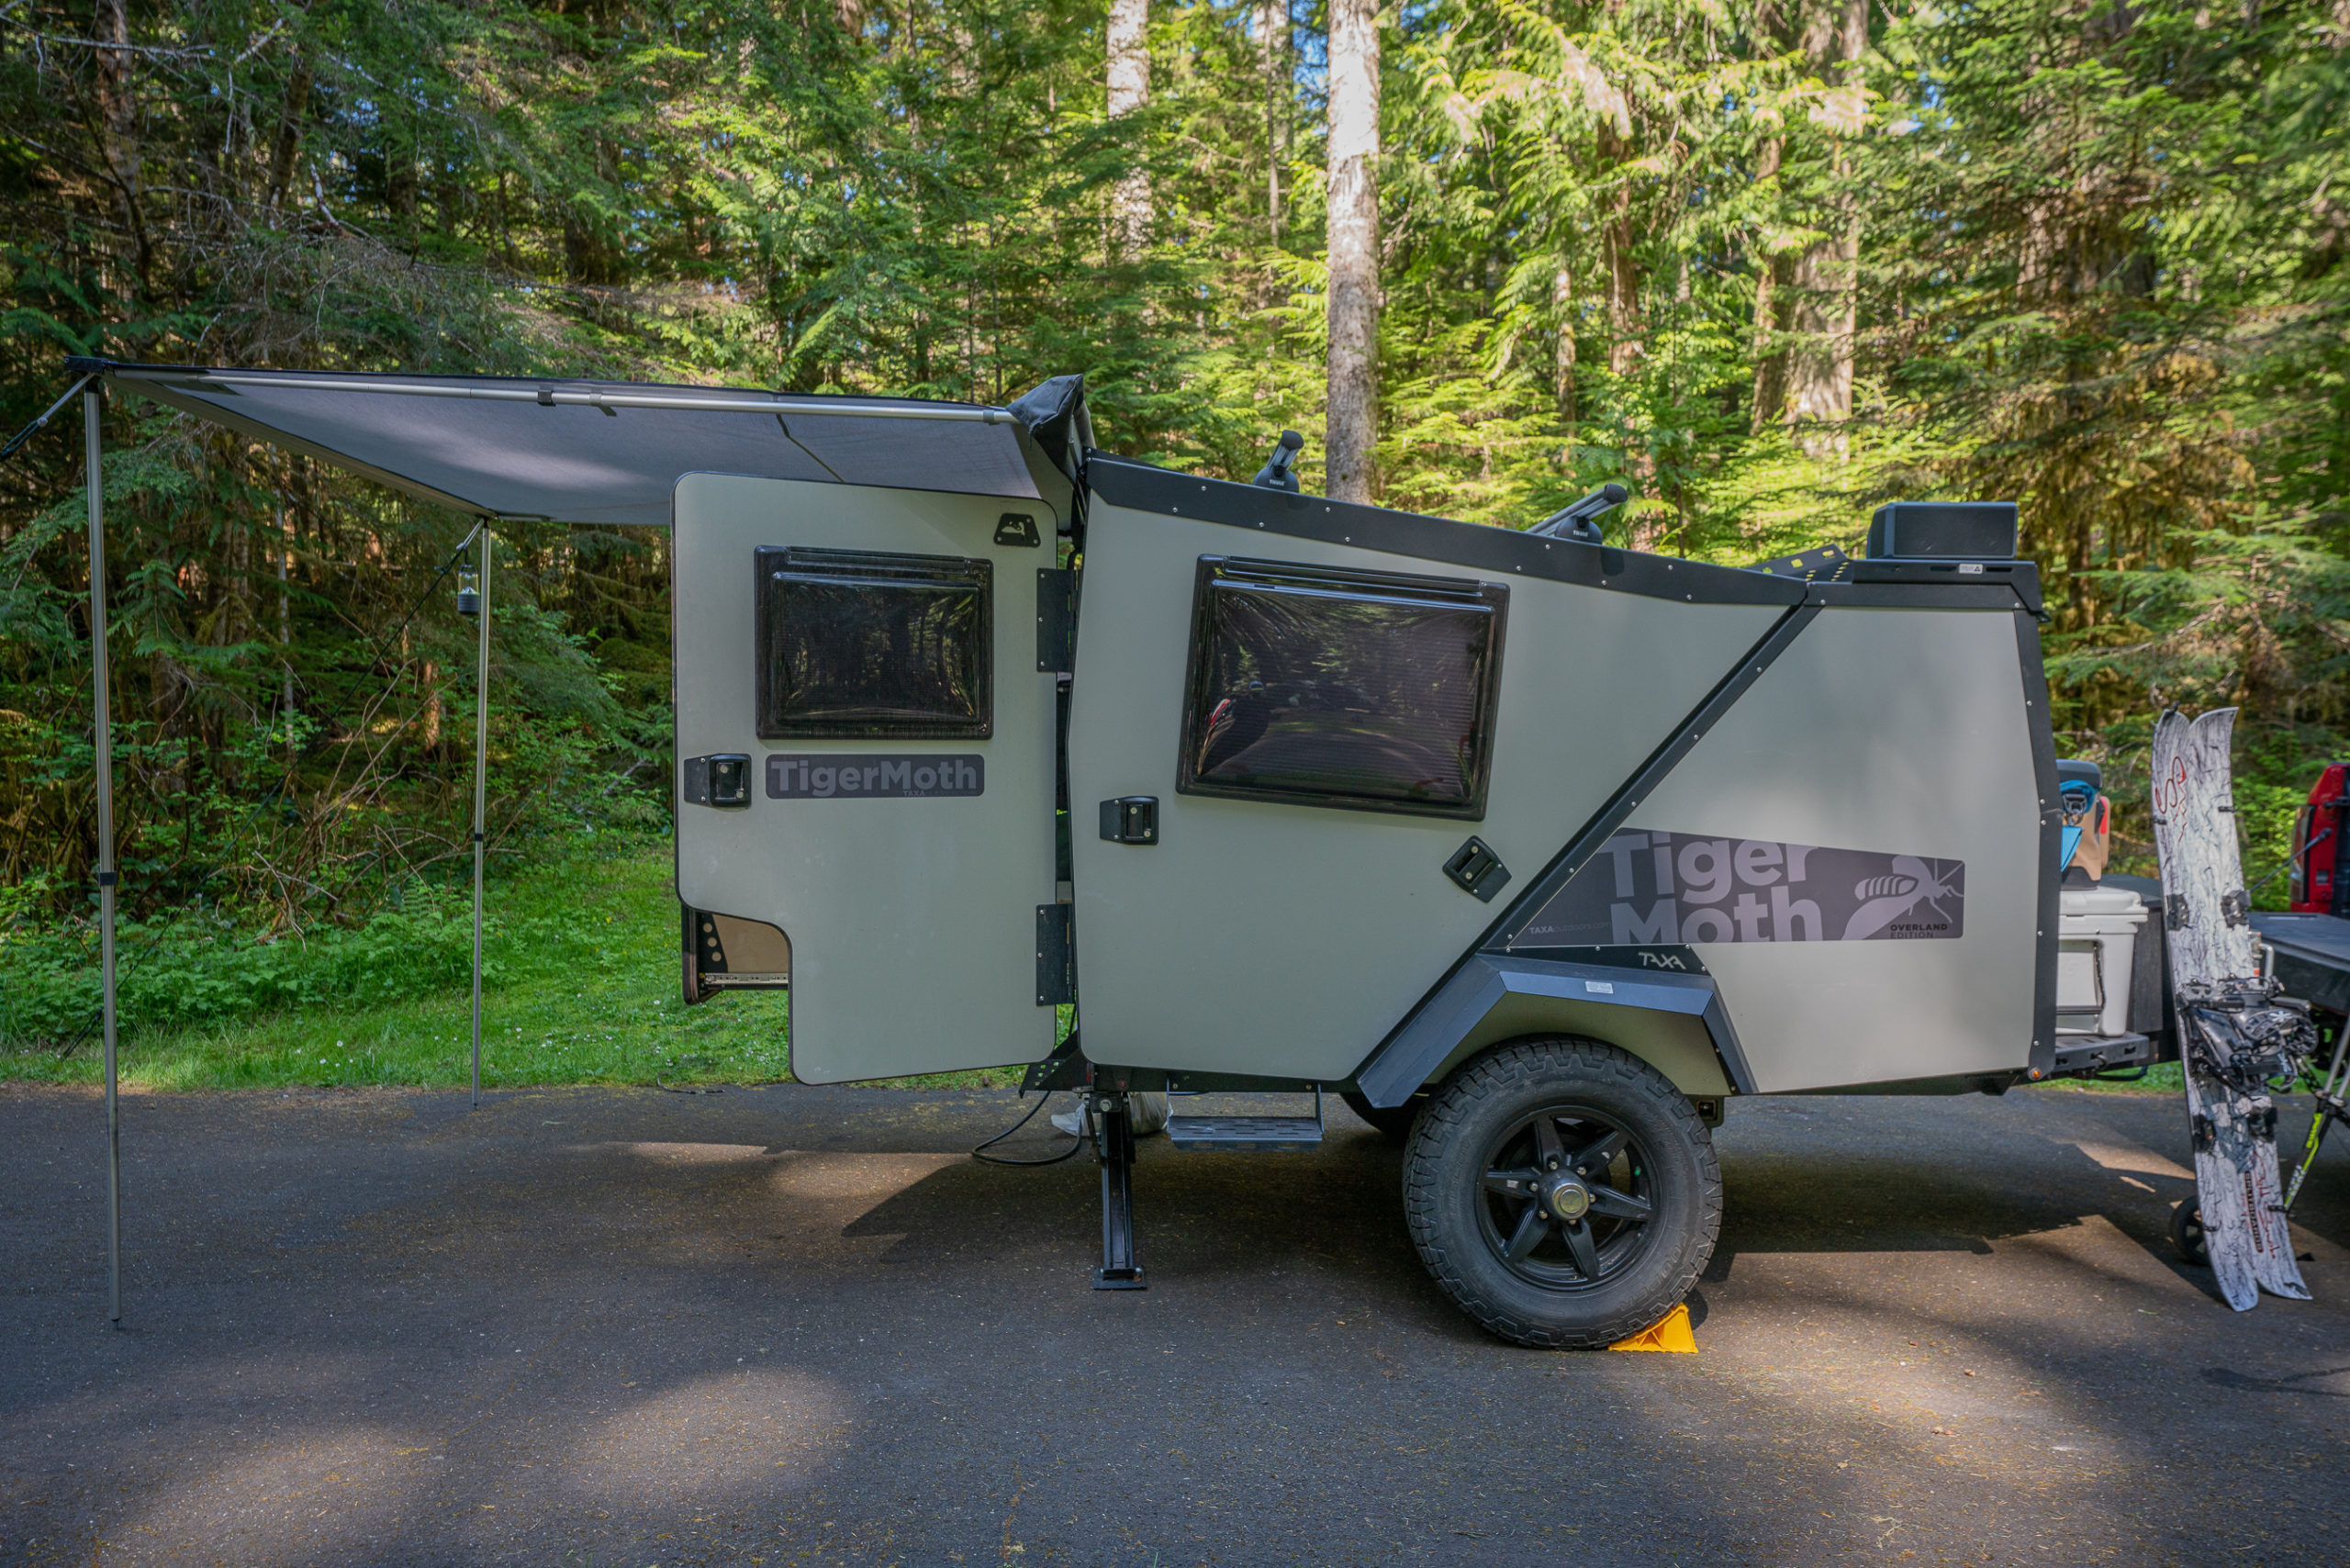 2021 Taxa Outdoors TigerMoth Overland side view